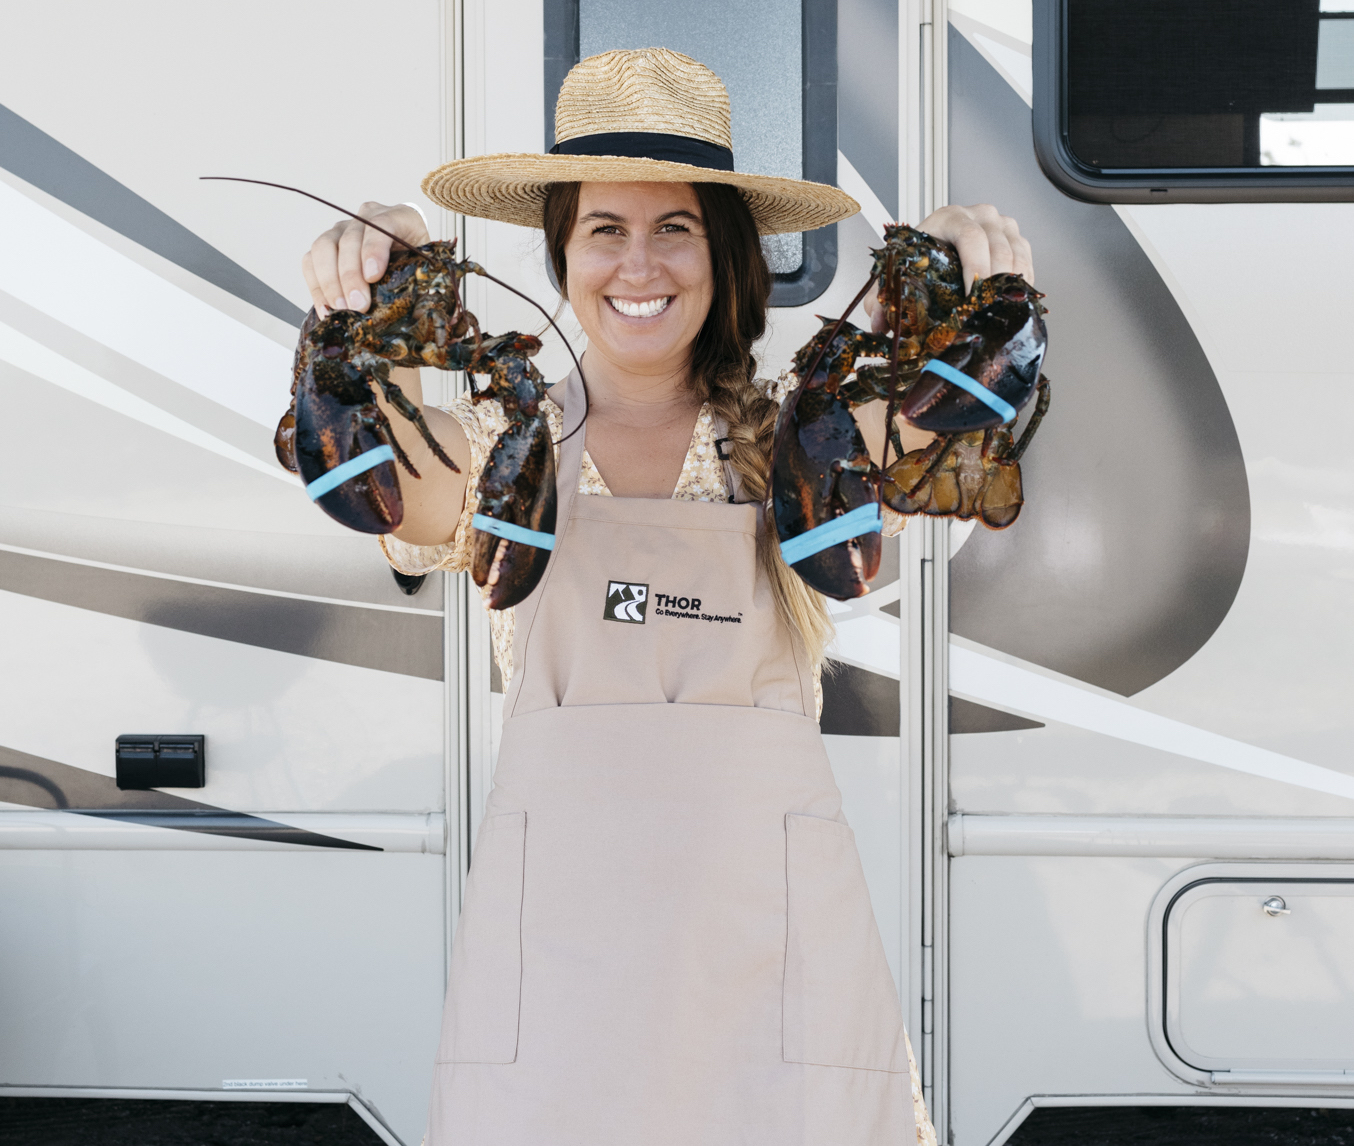 Sarah Glover in front of her THOR Motor Coach